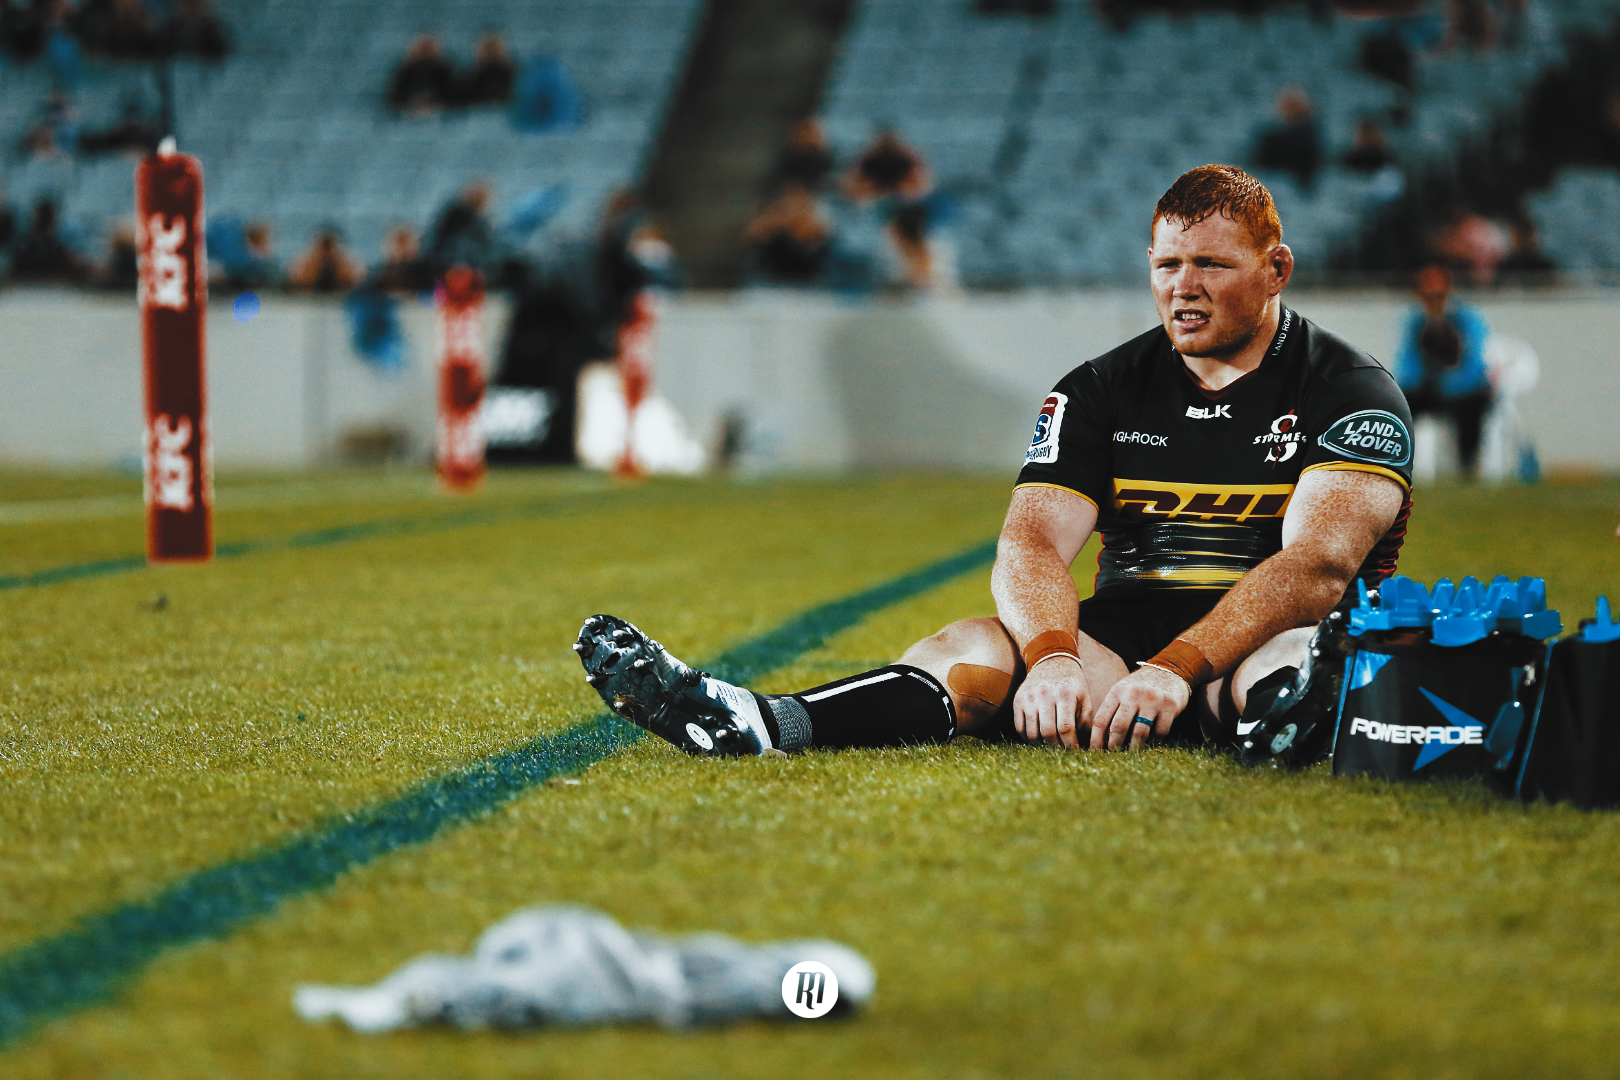 South Africa: A nation built for Test rugby; why are they struggling so?